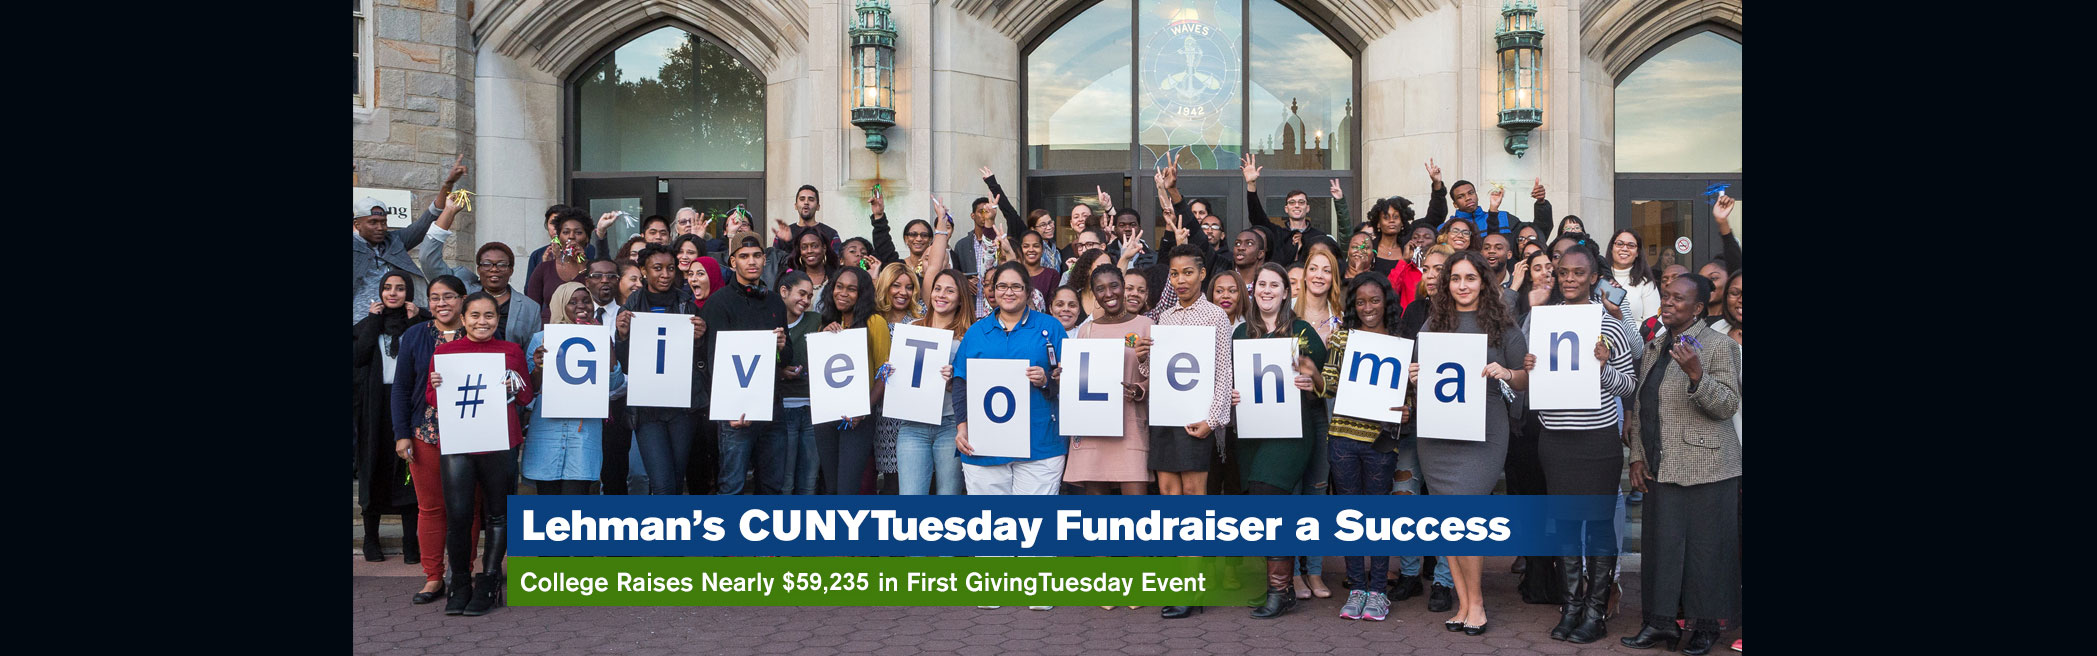 Lehman Raises Nearly $37,000 in First #CUNYTuesday Fundraiser